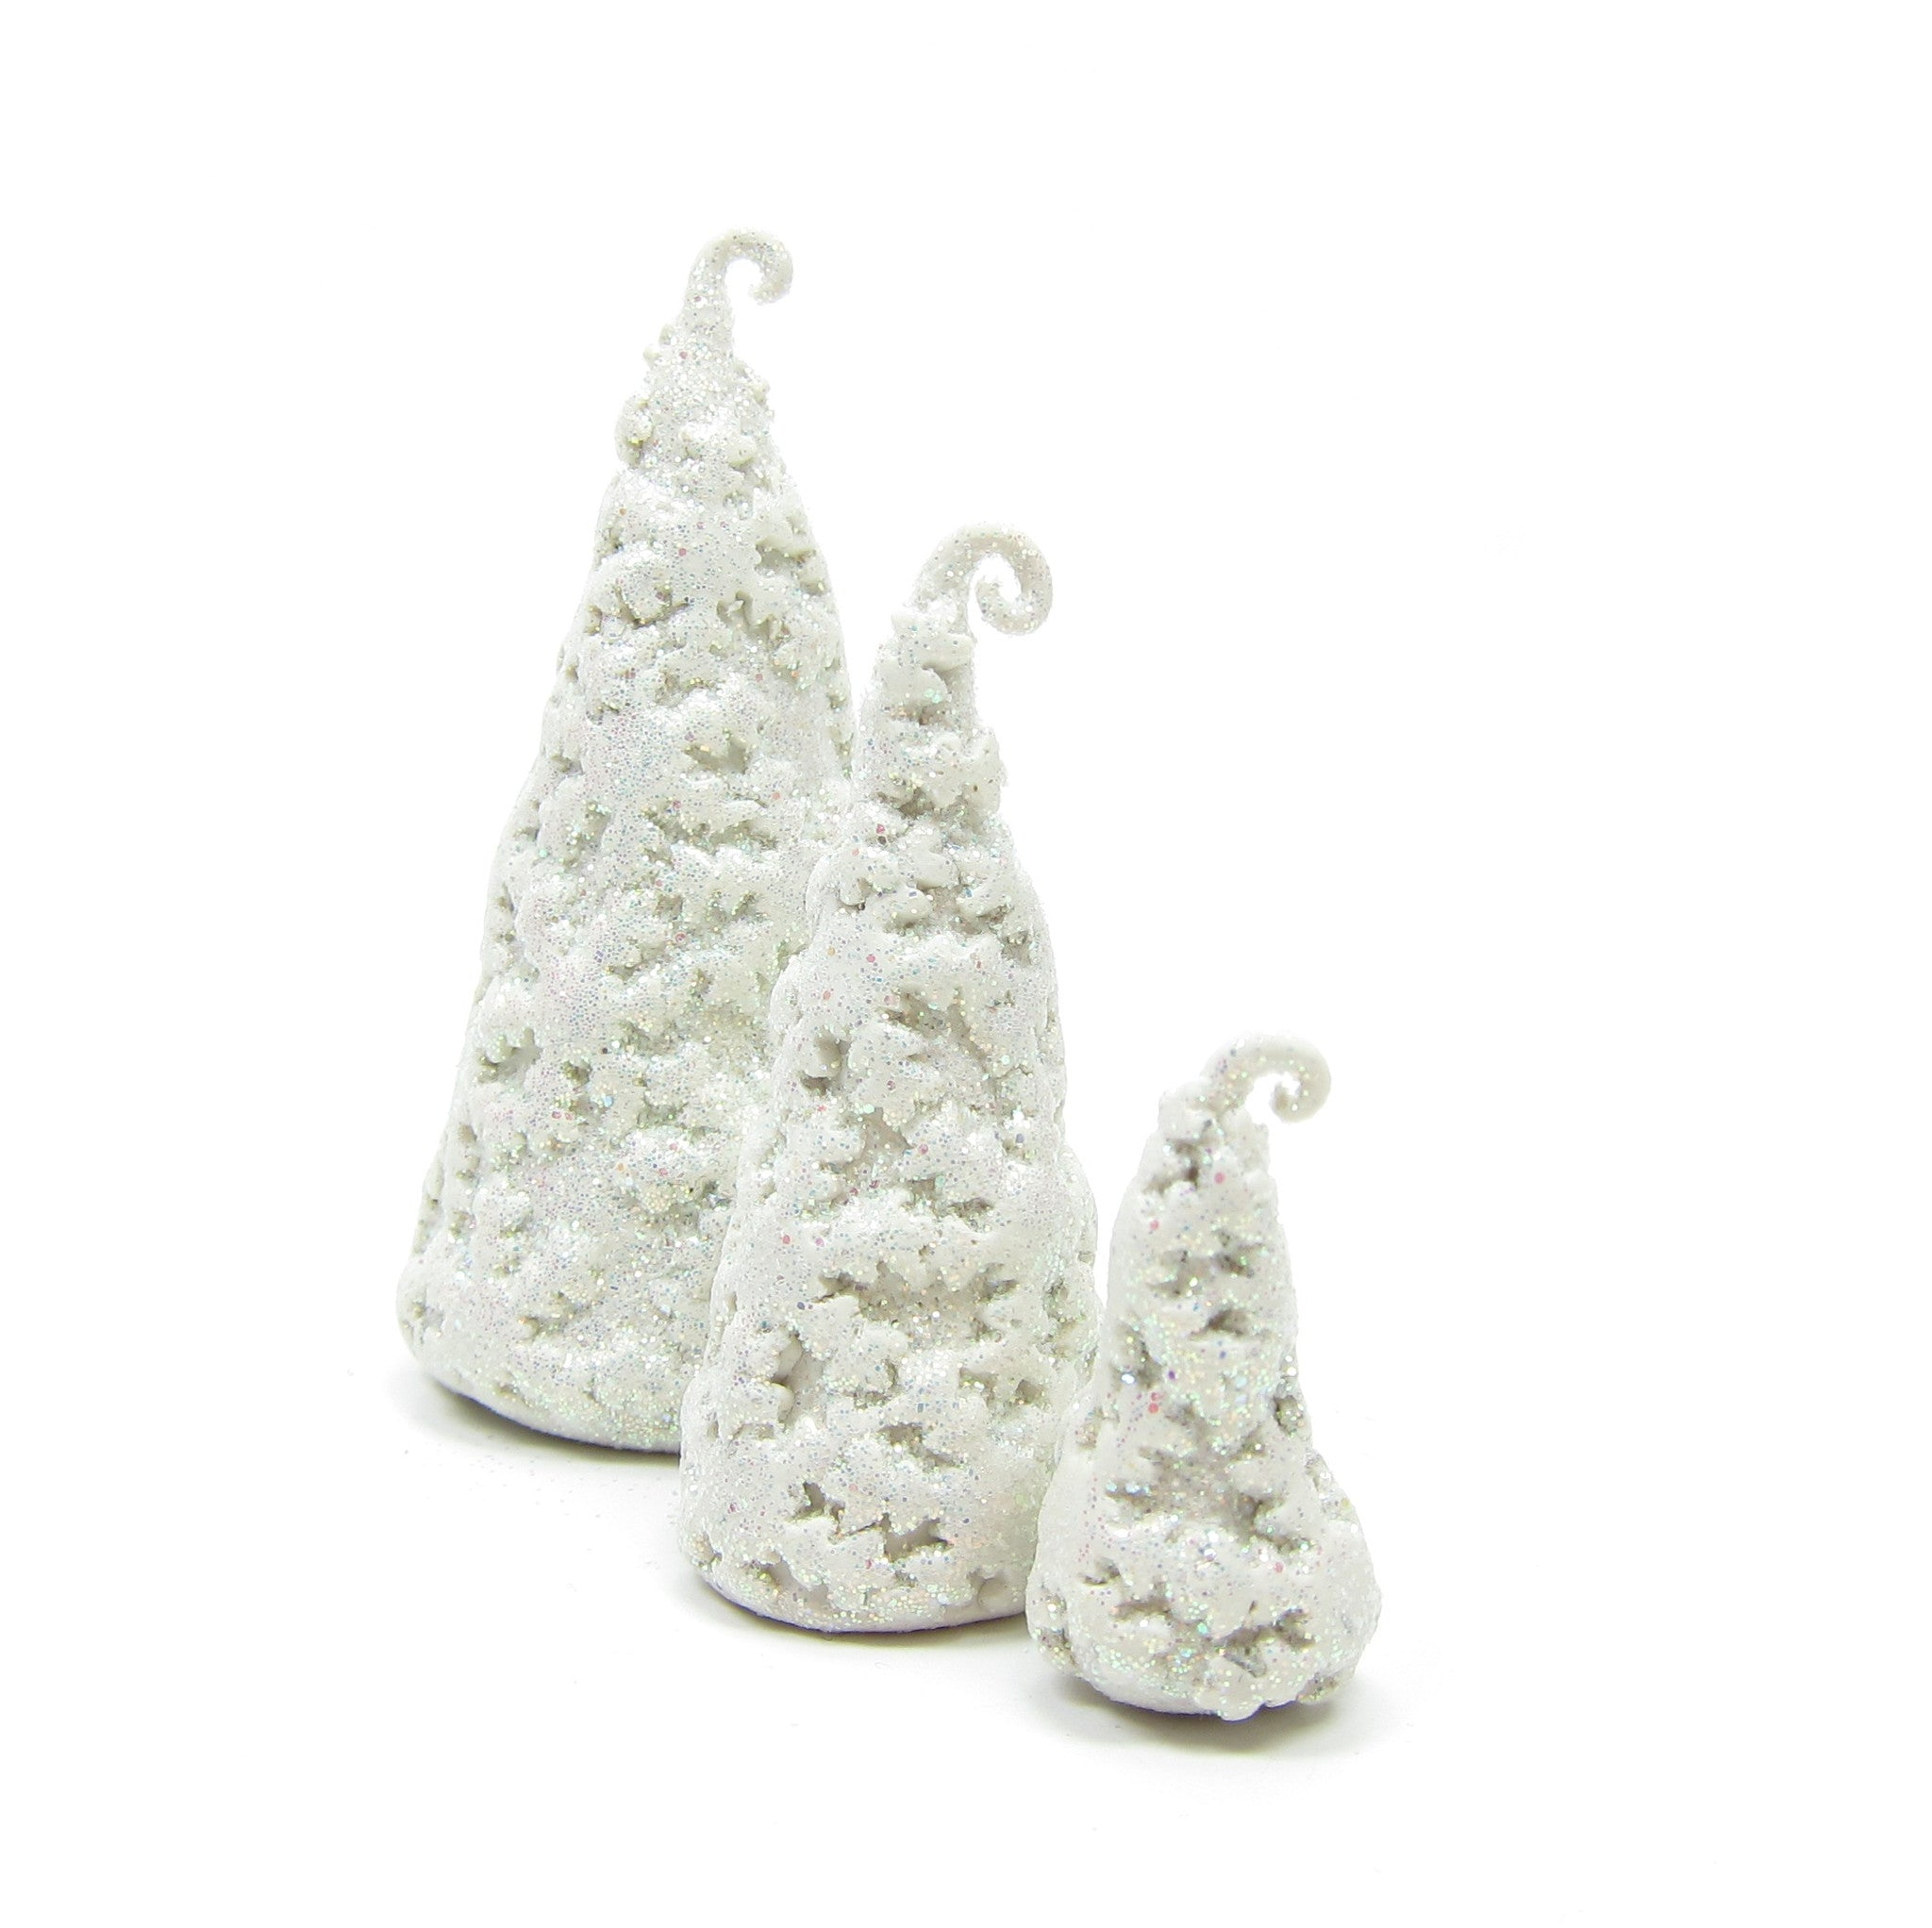 Snowflake trees polymer clay miniature figurines